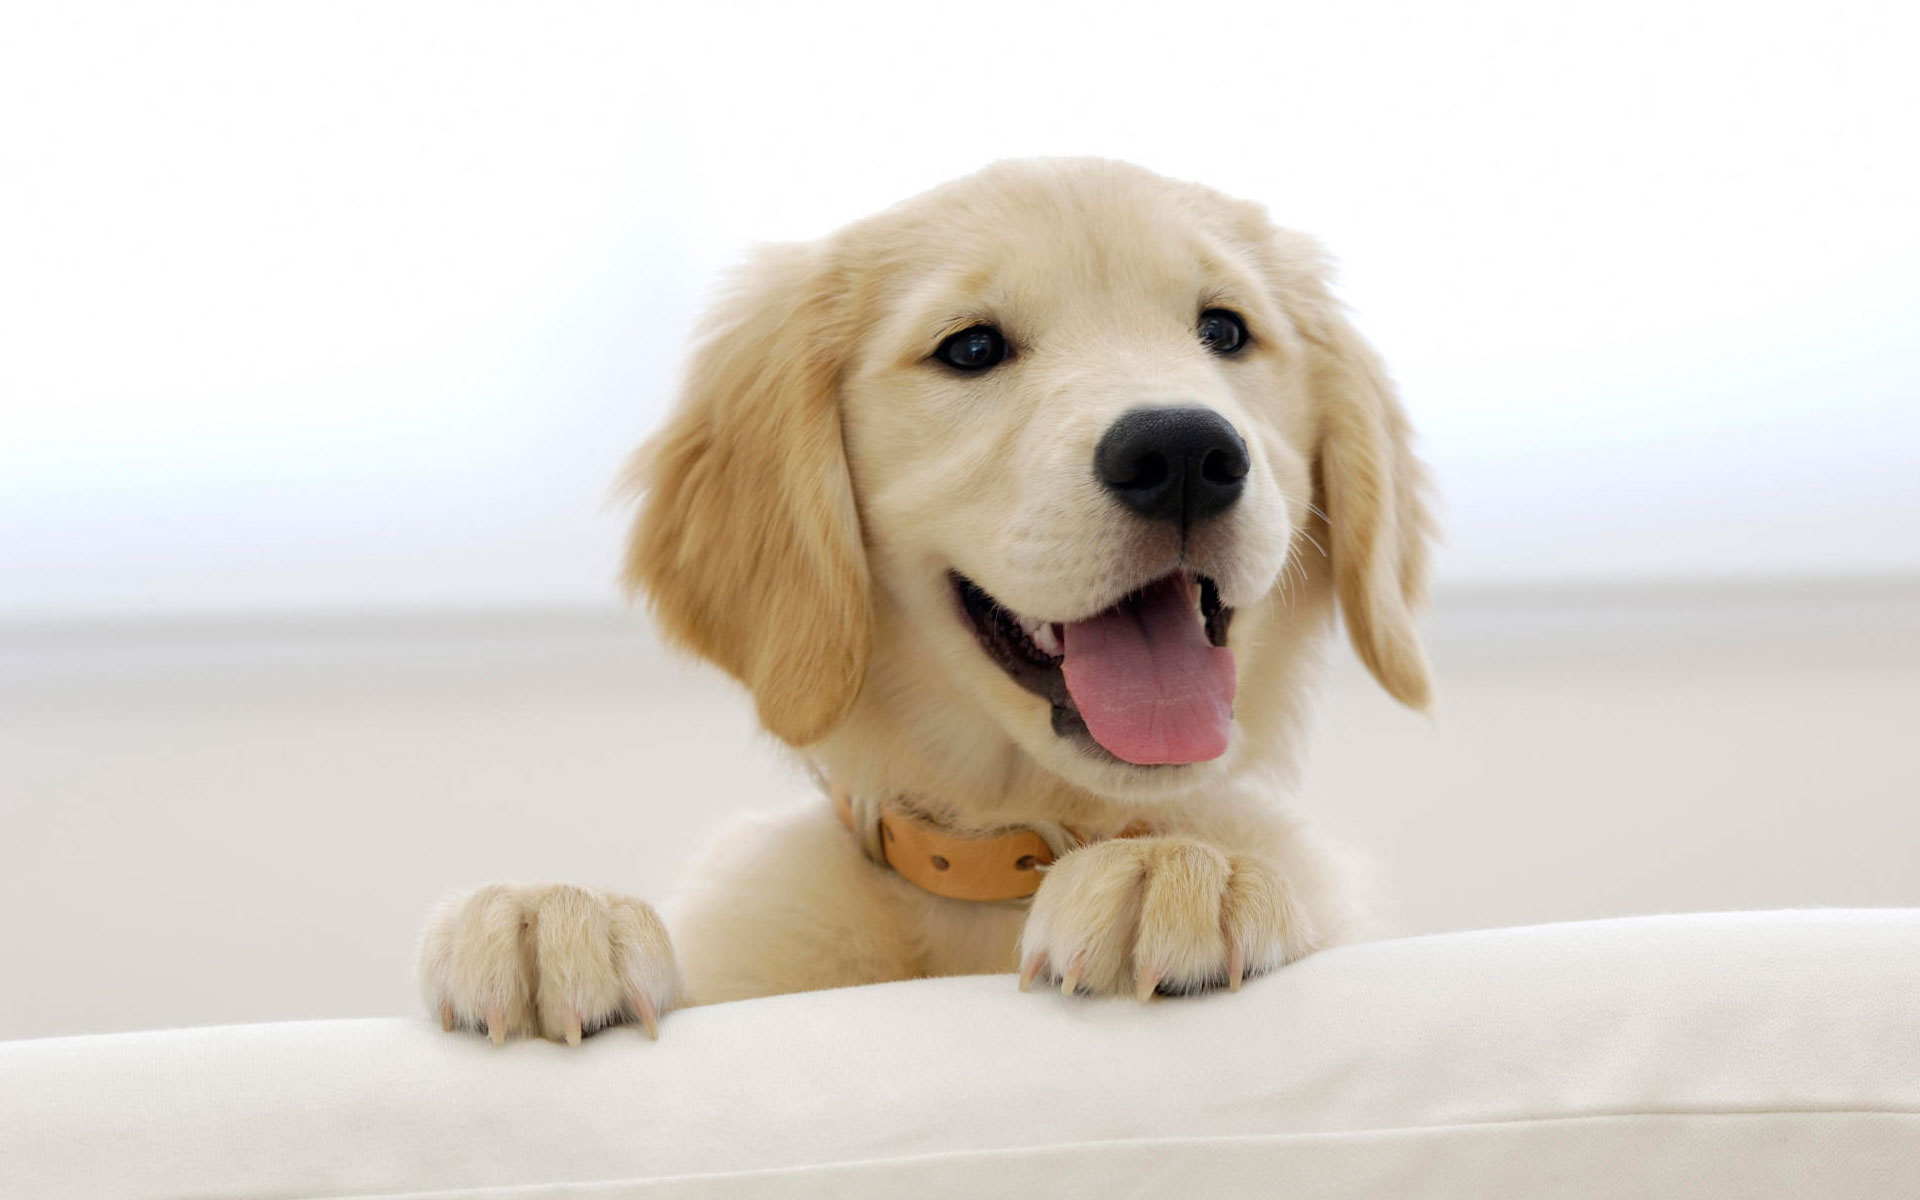 Golden retriever puppy wide